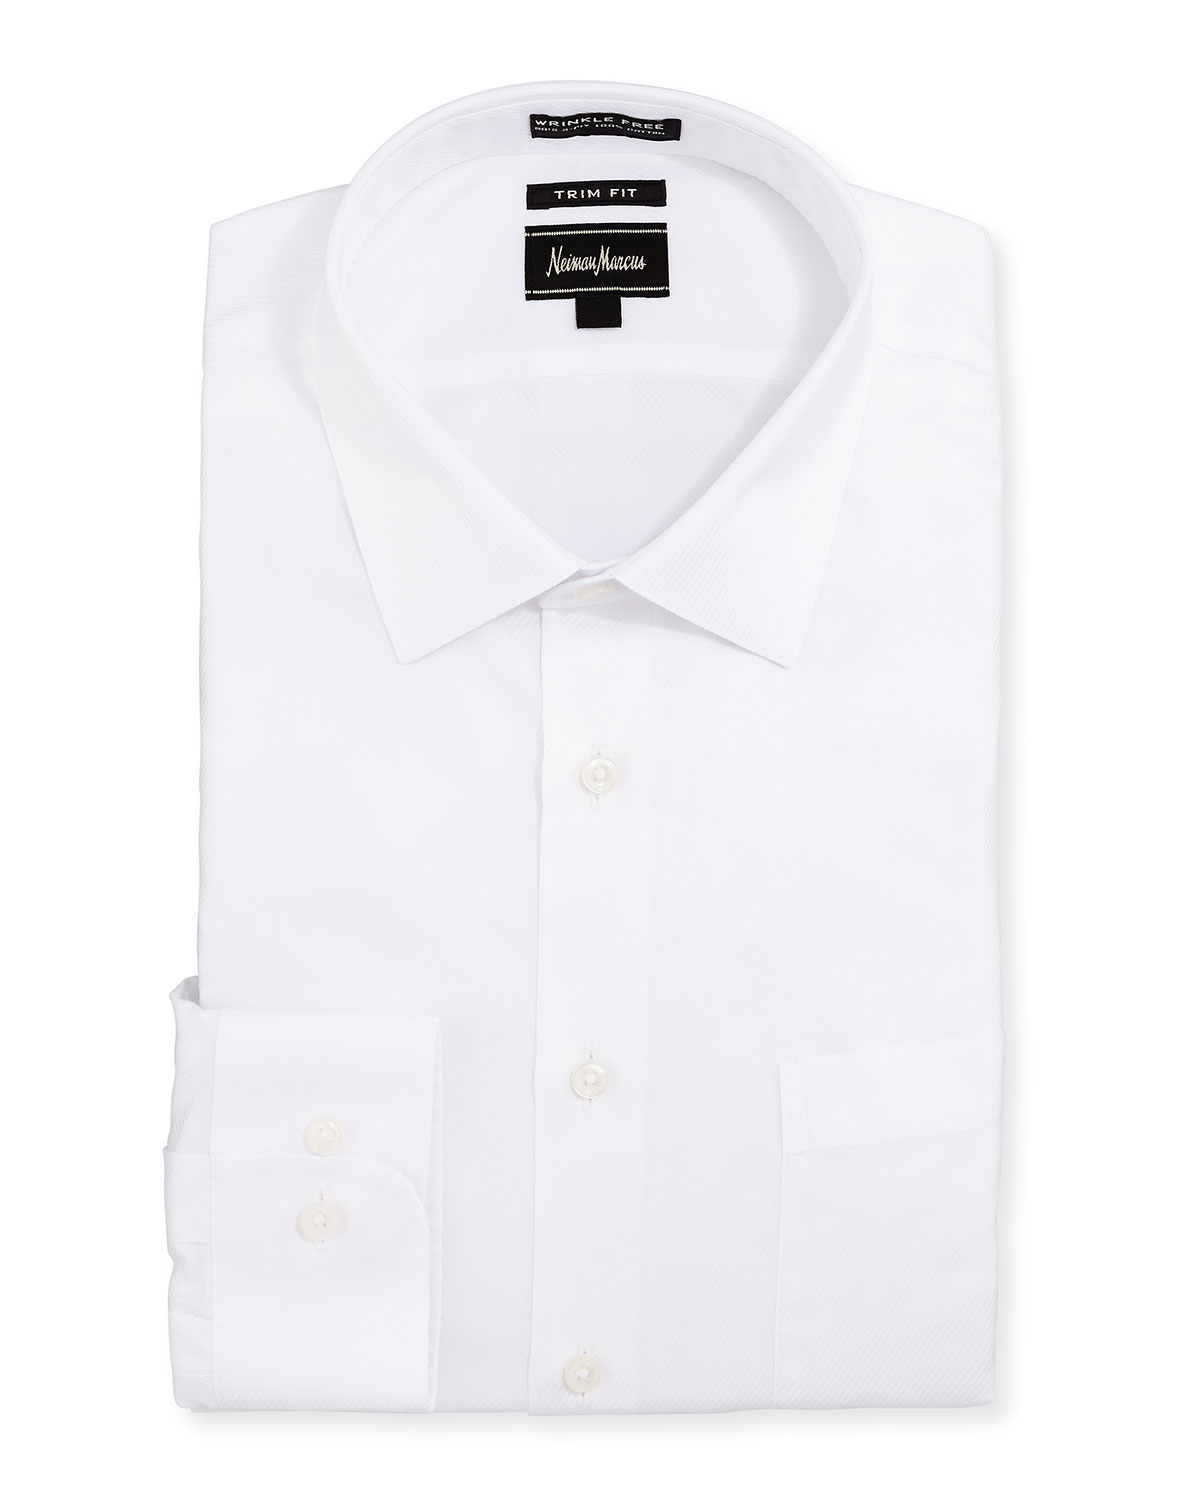 Neiman marcus trim fit non iron skinny stripe dress shirt for White non iron dress shirts